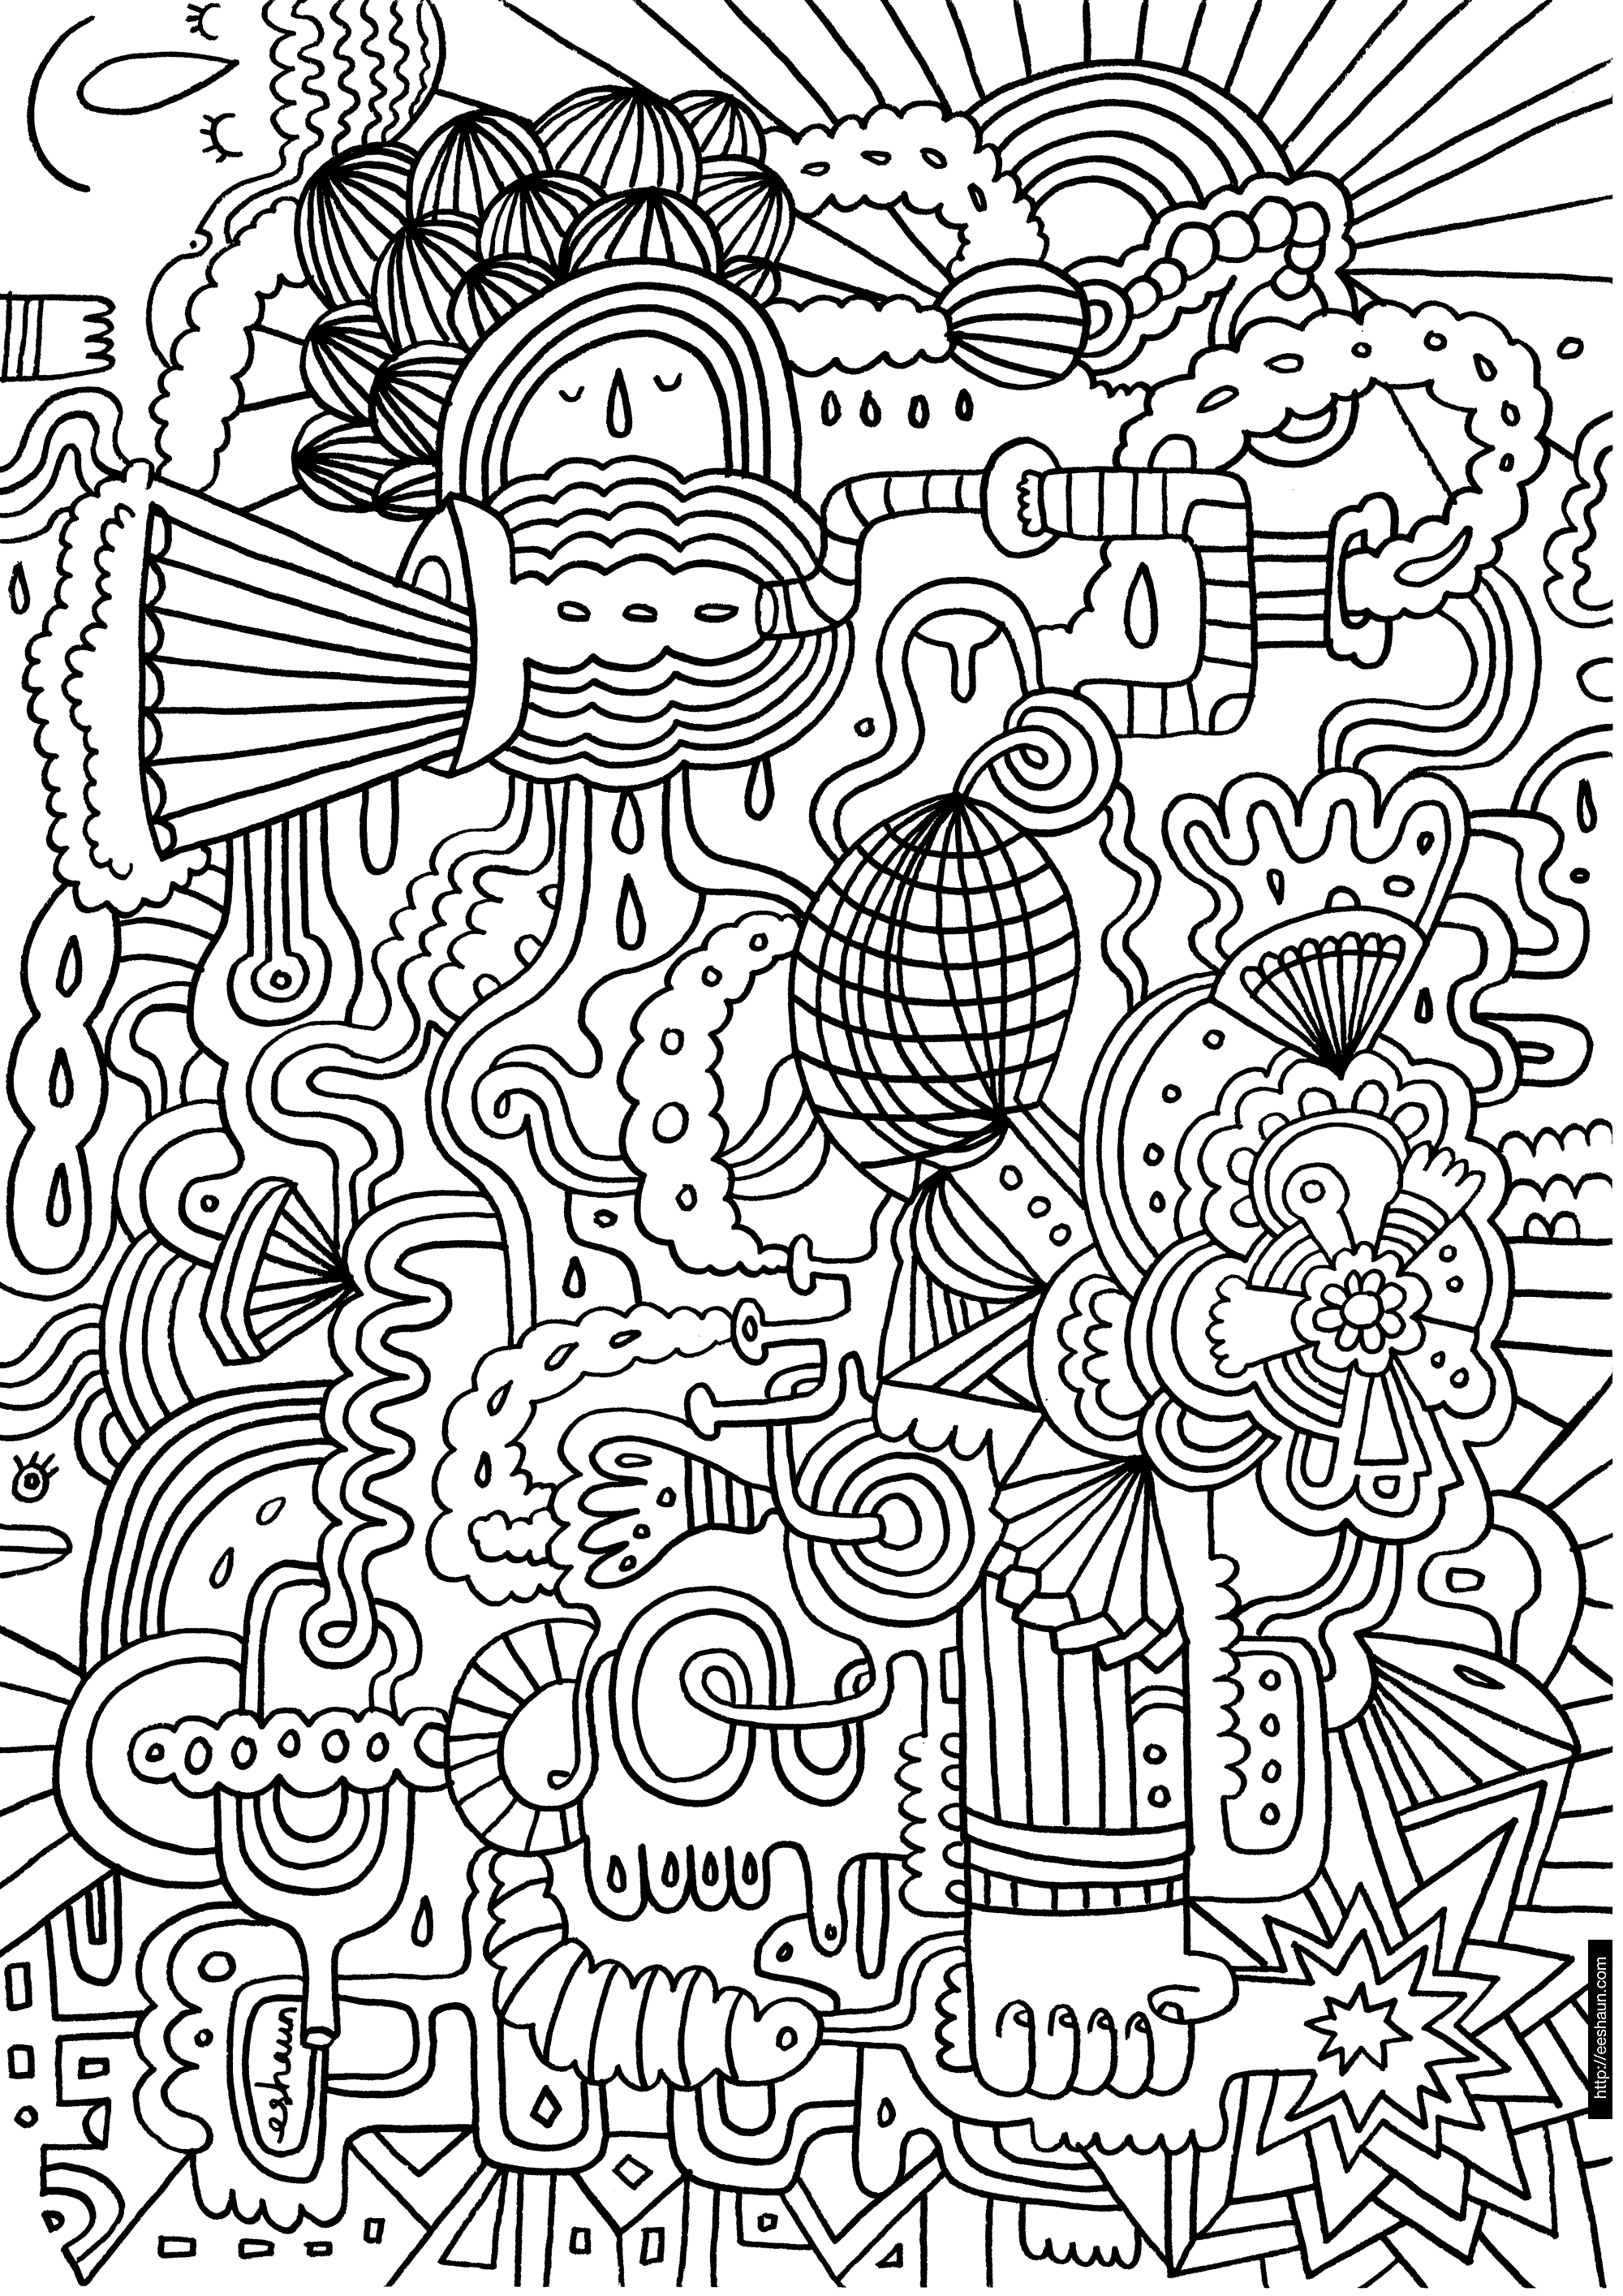 Hard Coloring Pages - Free Large Images | Adult Coloring Pages - Free Printable Doodle Patterns